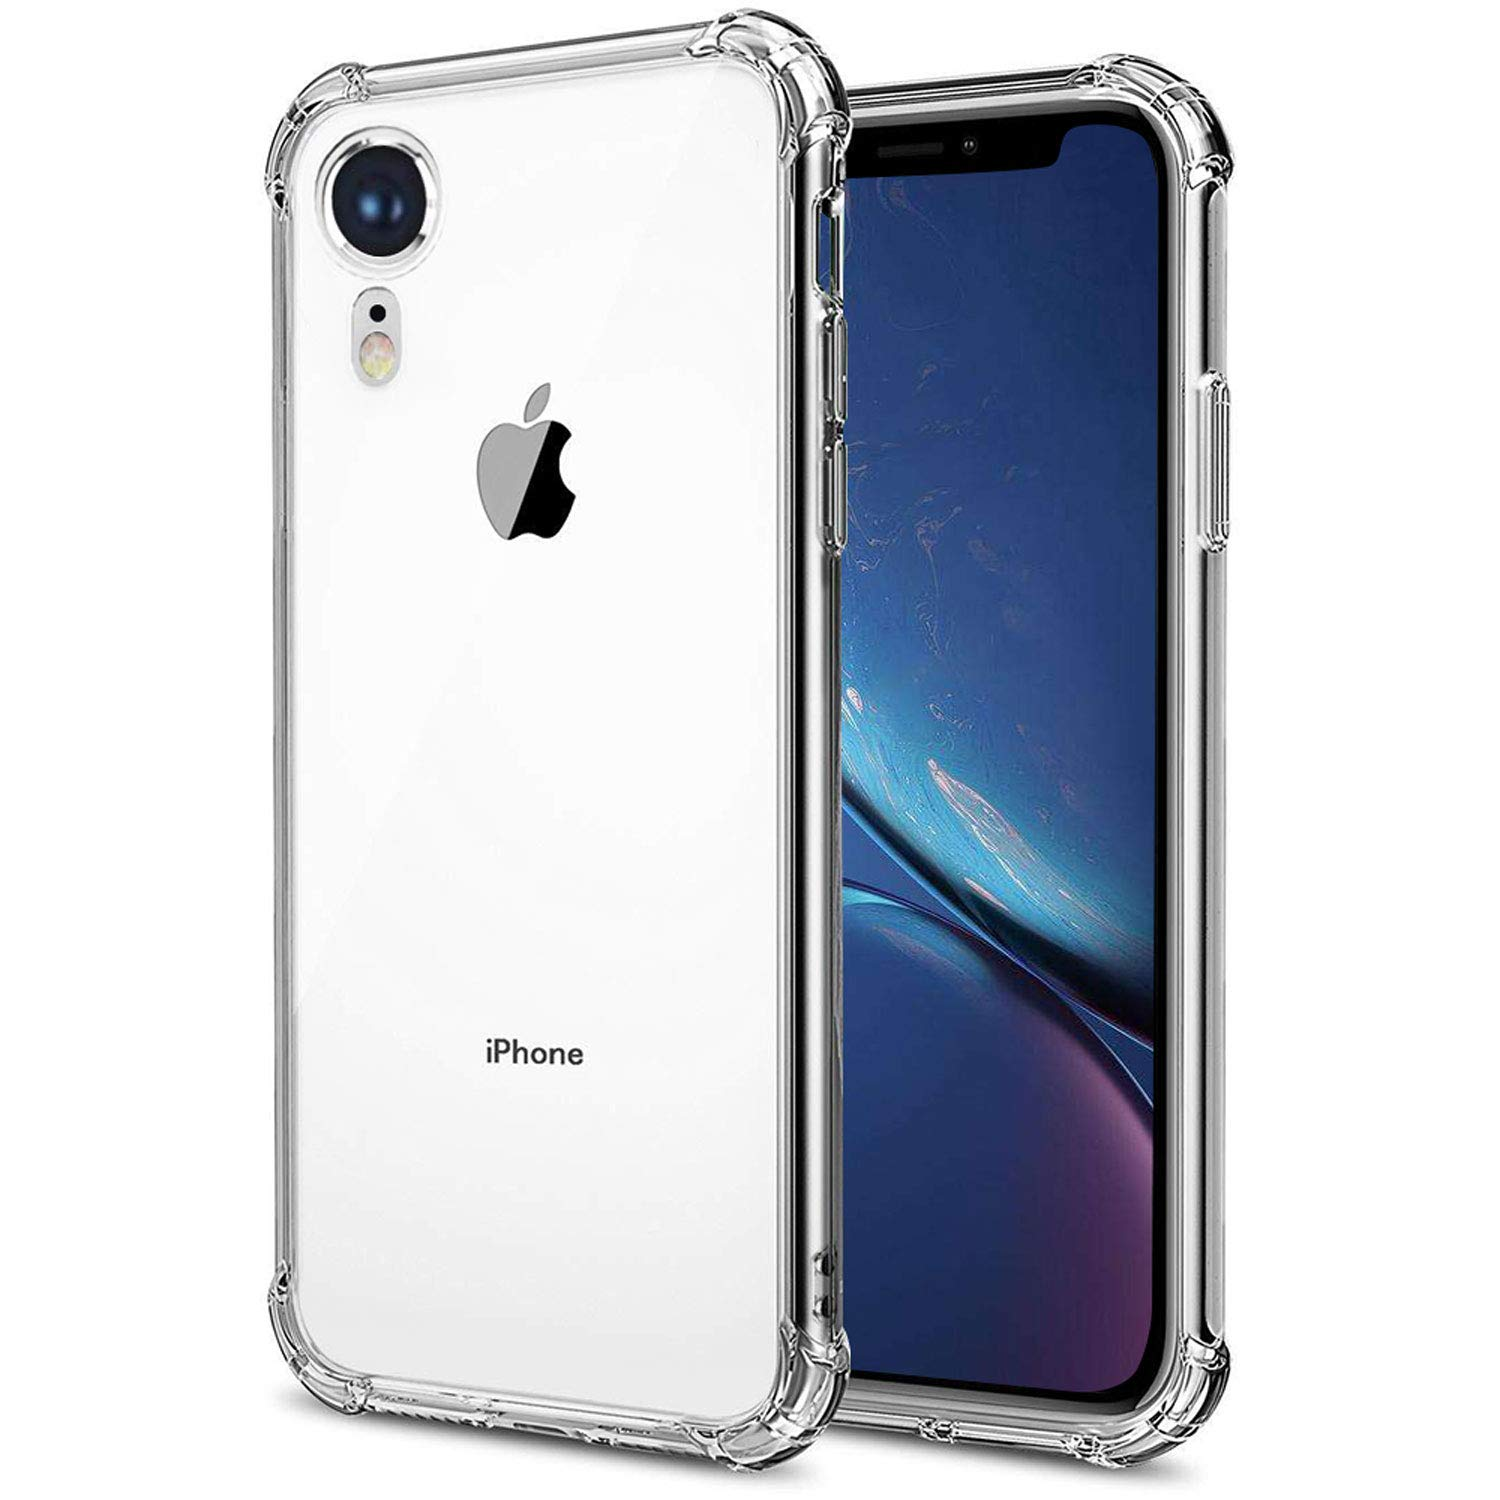 SLKYLLH Compatible iPhone XR Case, [Shock Absorption][Crystal Clear] Soft TPU Bumper Slim Protective Case Cover Scratch-Resistant with 4 Corners Protection for Apple iPhone XR 6.1 inch 2018 (Clear)